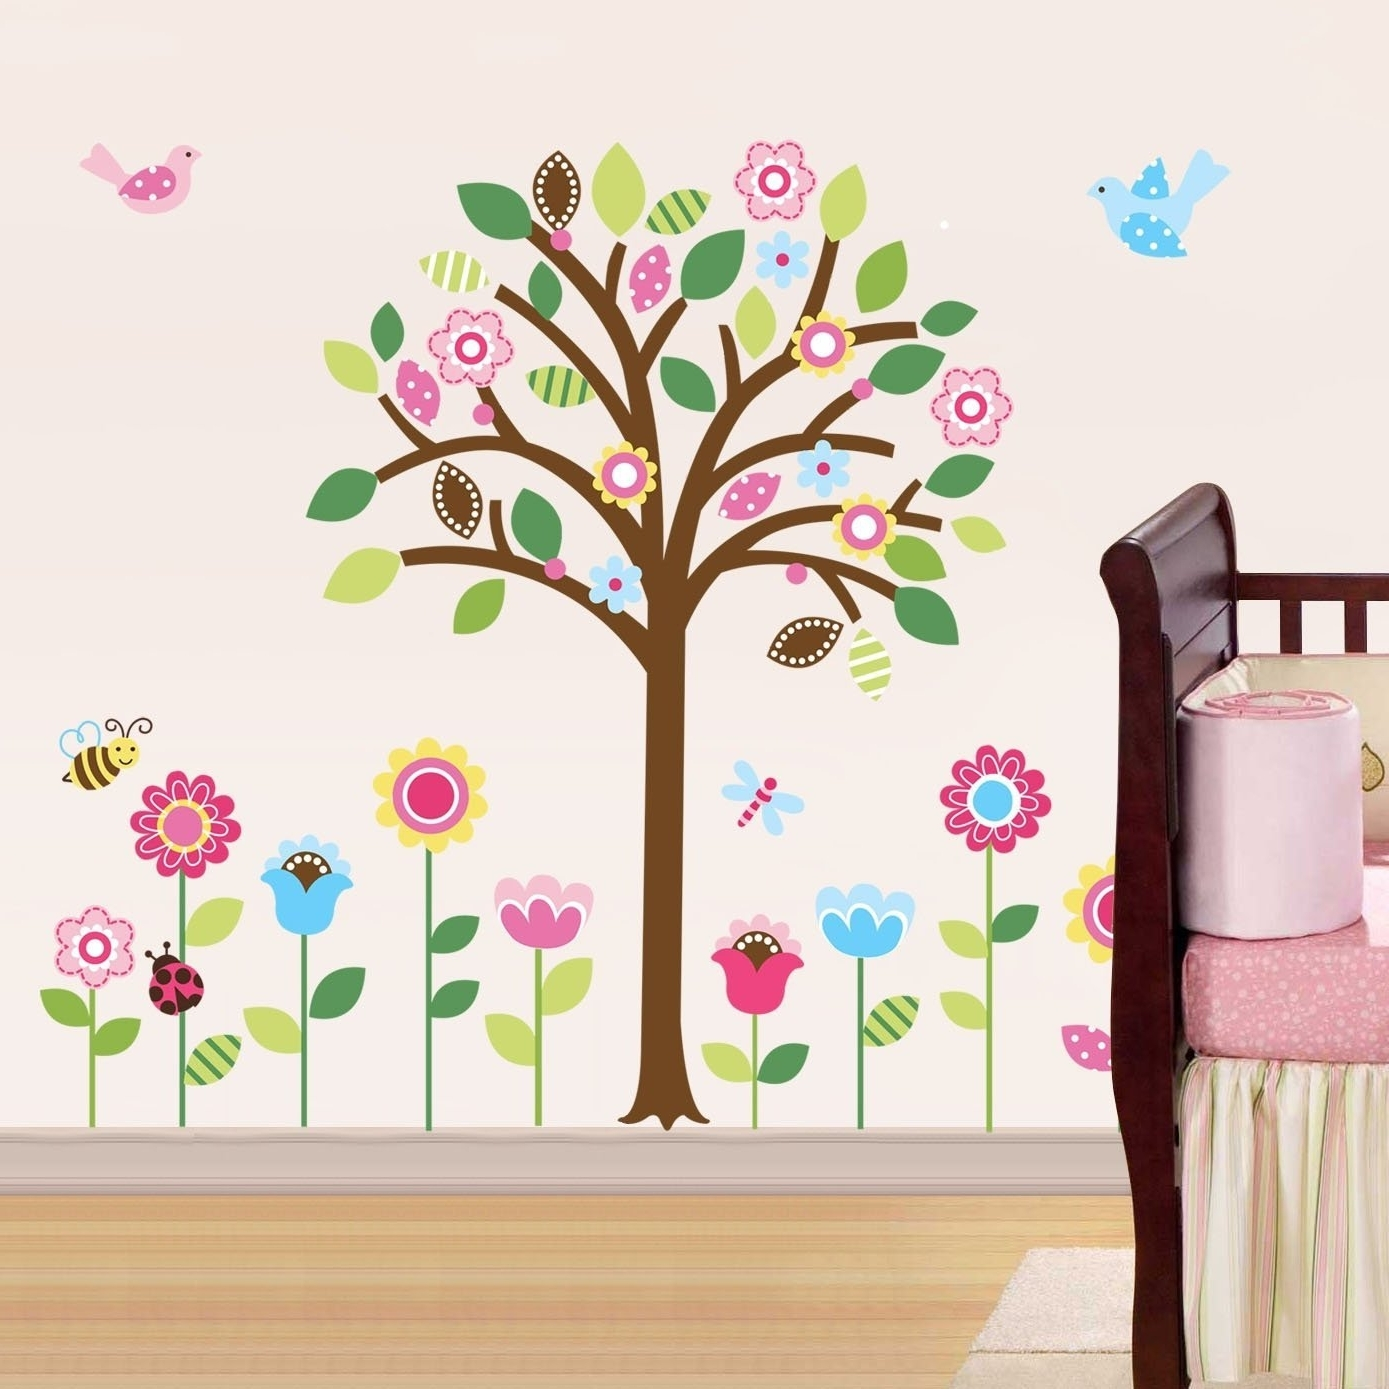 Best And Newest Amazon: Pretty Pastel Garden Giant Peel & Stick Wall Art Sticker Intended For Baby Wall Art (View 5 of 15)